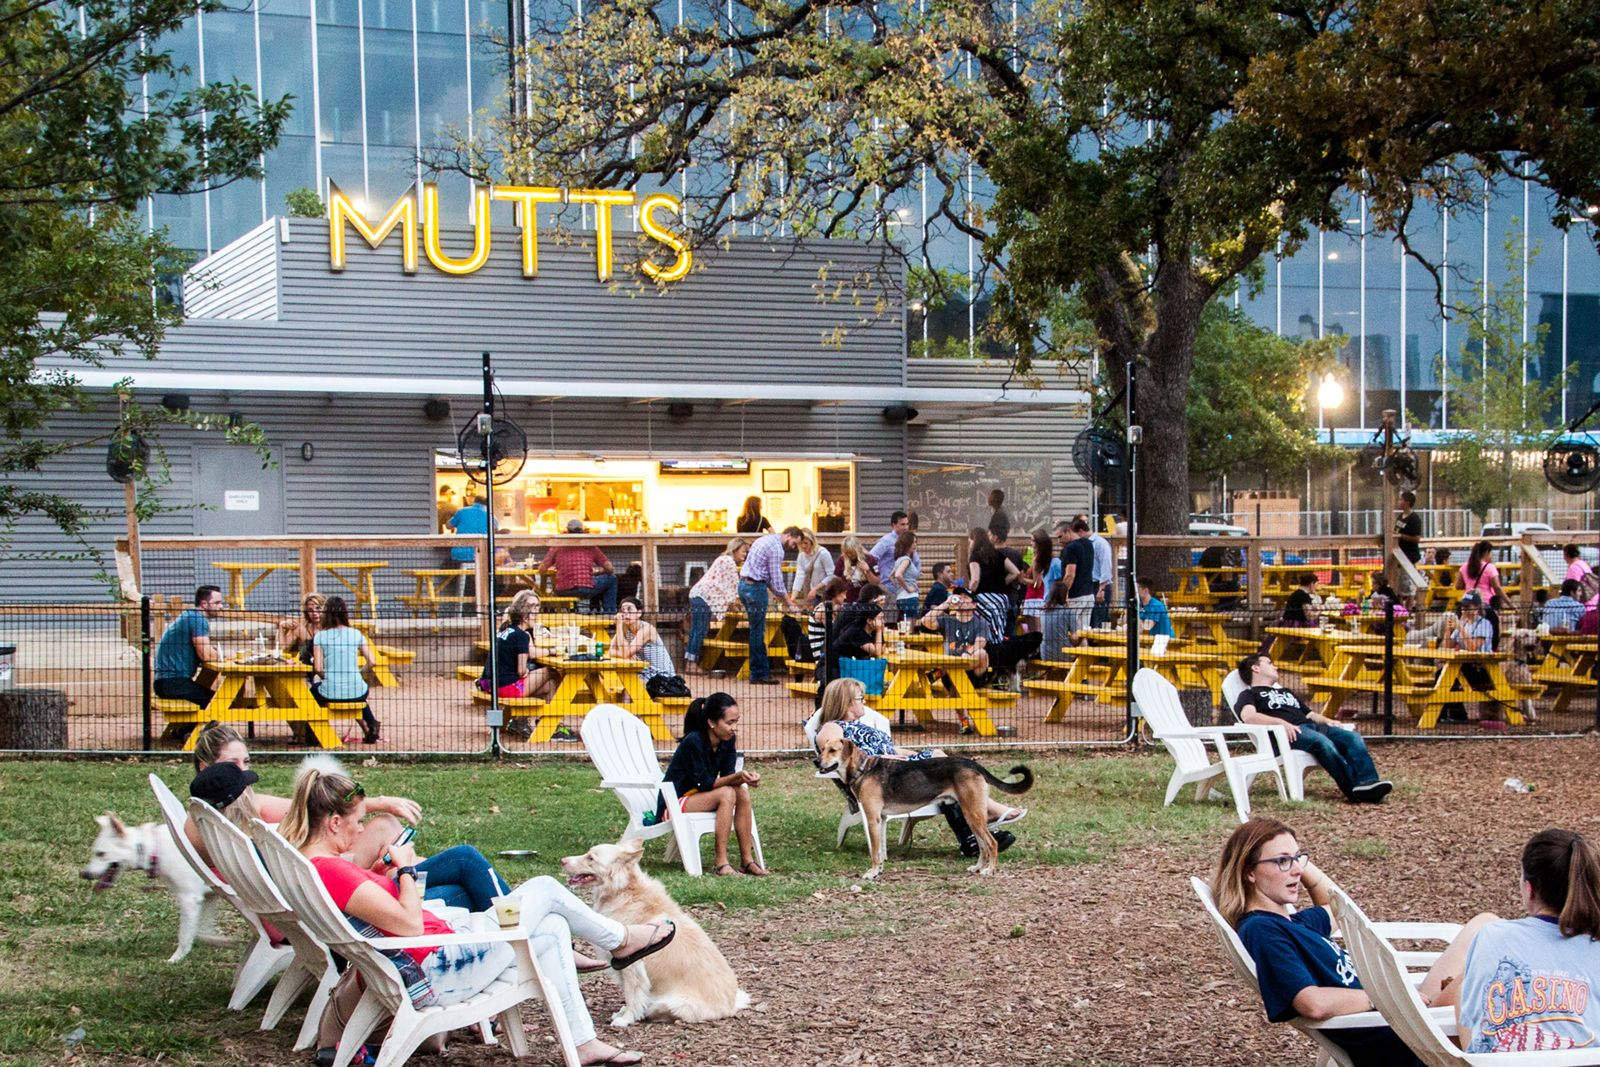 MUTTS Canine Cantina, a new innovative franchise concept that provides a unique urban oasis for dogs and their owners, is expanding across major markets in the U.S. Franchising opportunities available.